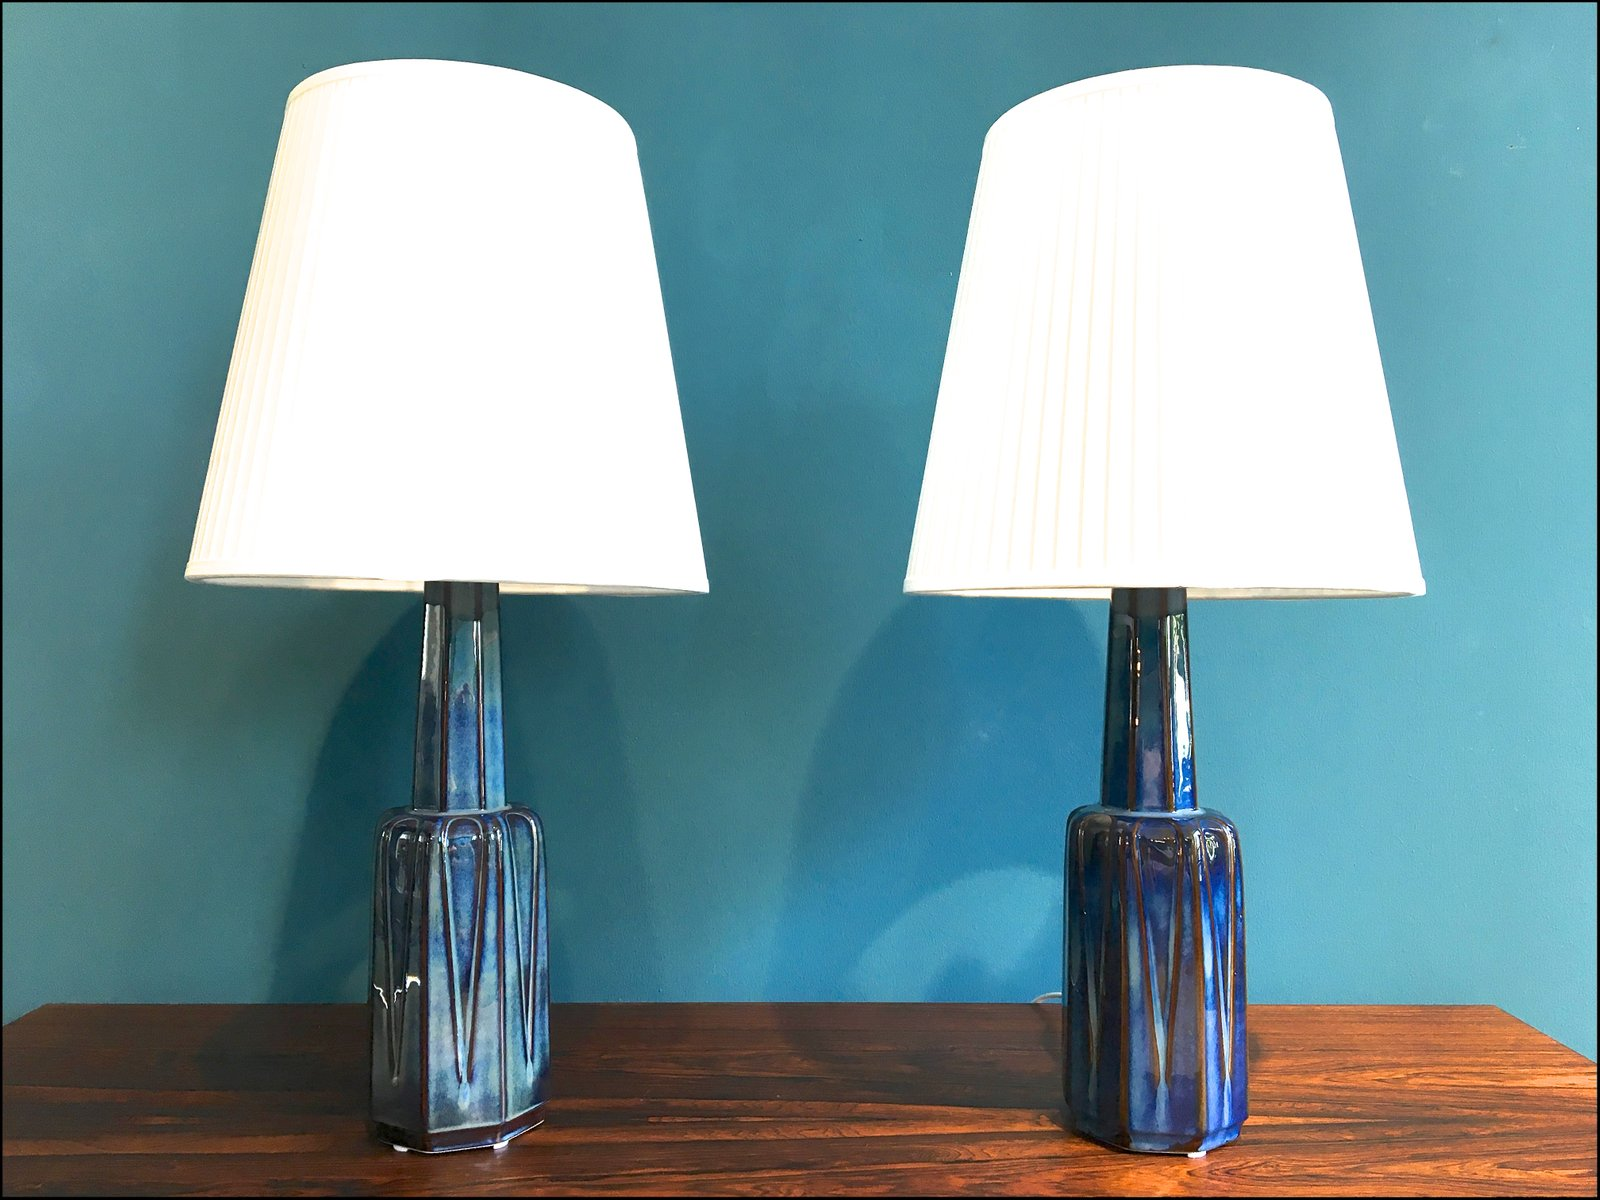 Vintage danish ceramic table lamps by einar johansen for soholm vintage danish ceramic table lamps by einar johansen for soholm set of 2 geotapseo Images